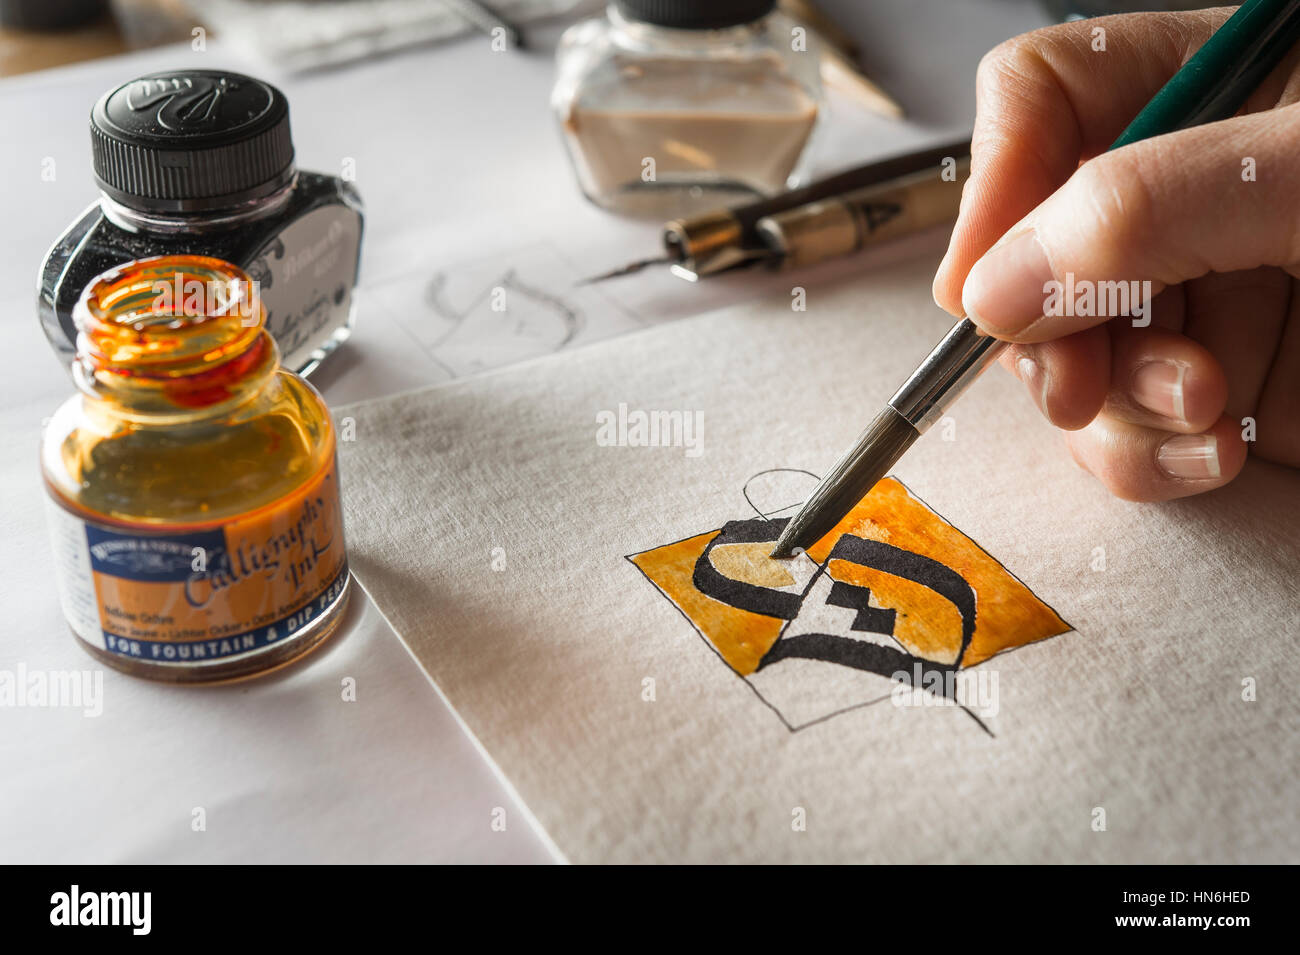 Calligraphy studio hand paints surface with brush letter s on